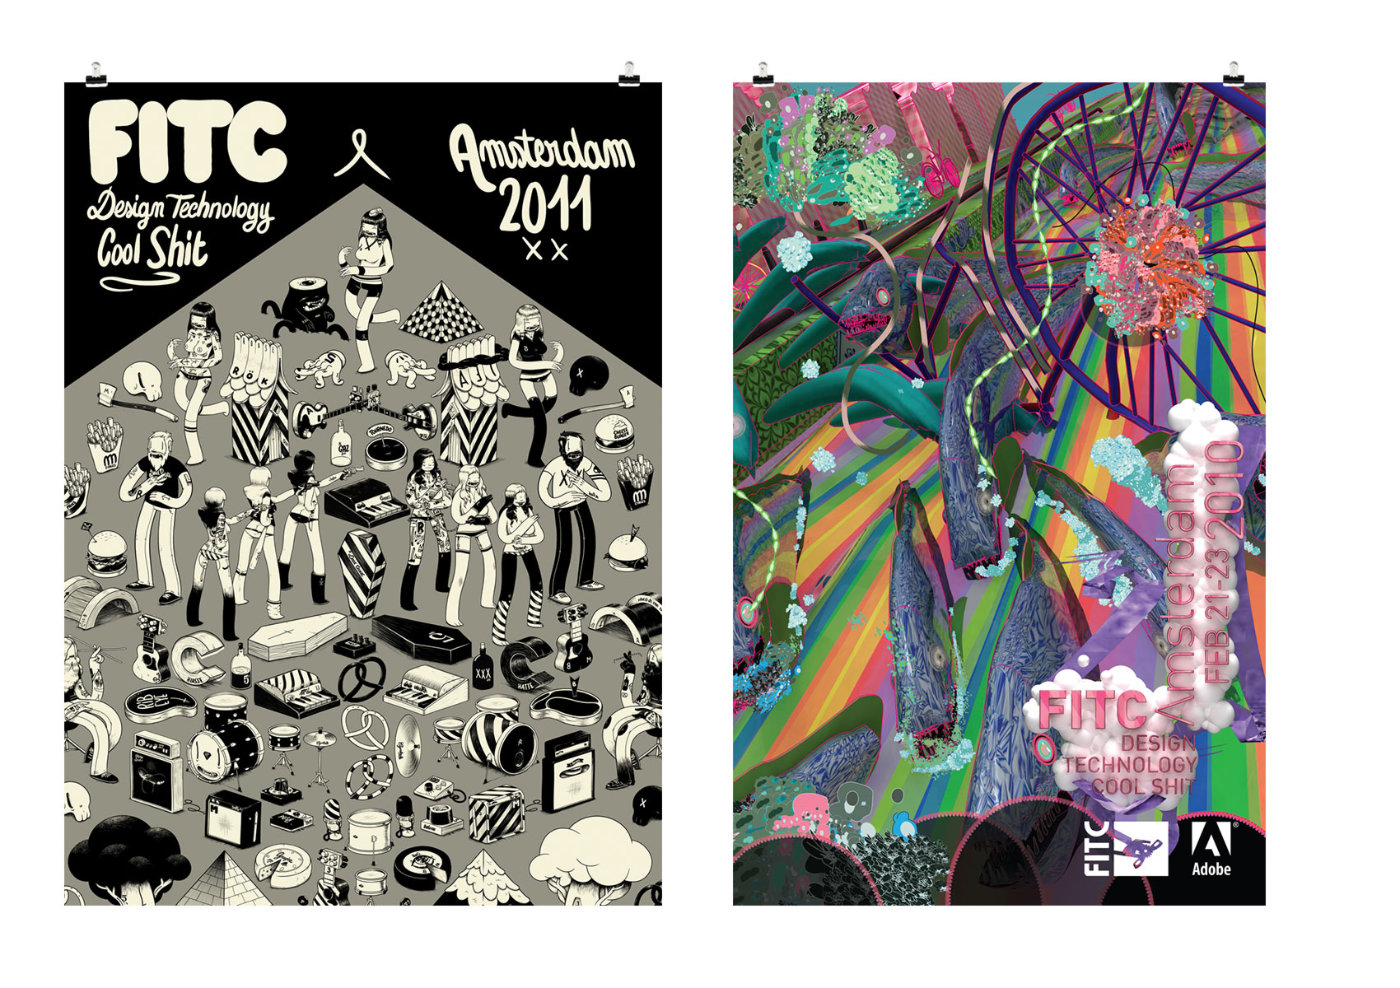 FITC_posters_2011-2010.jpg